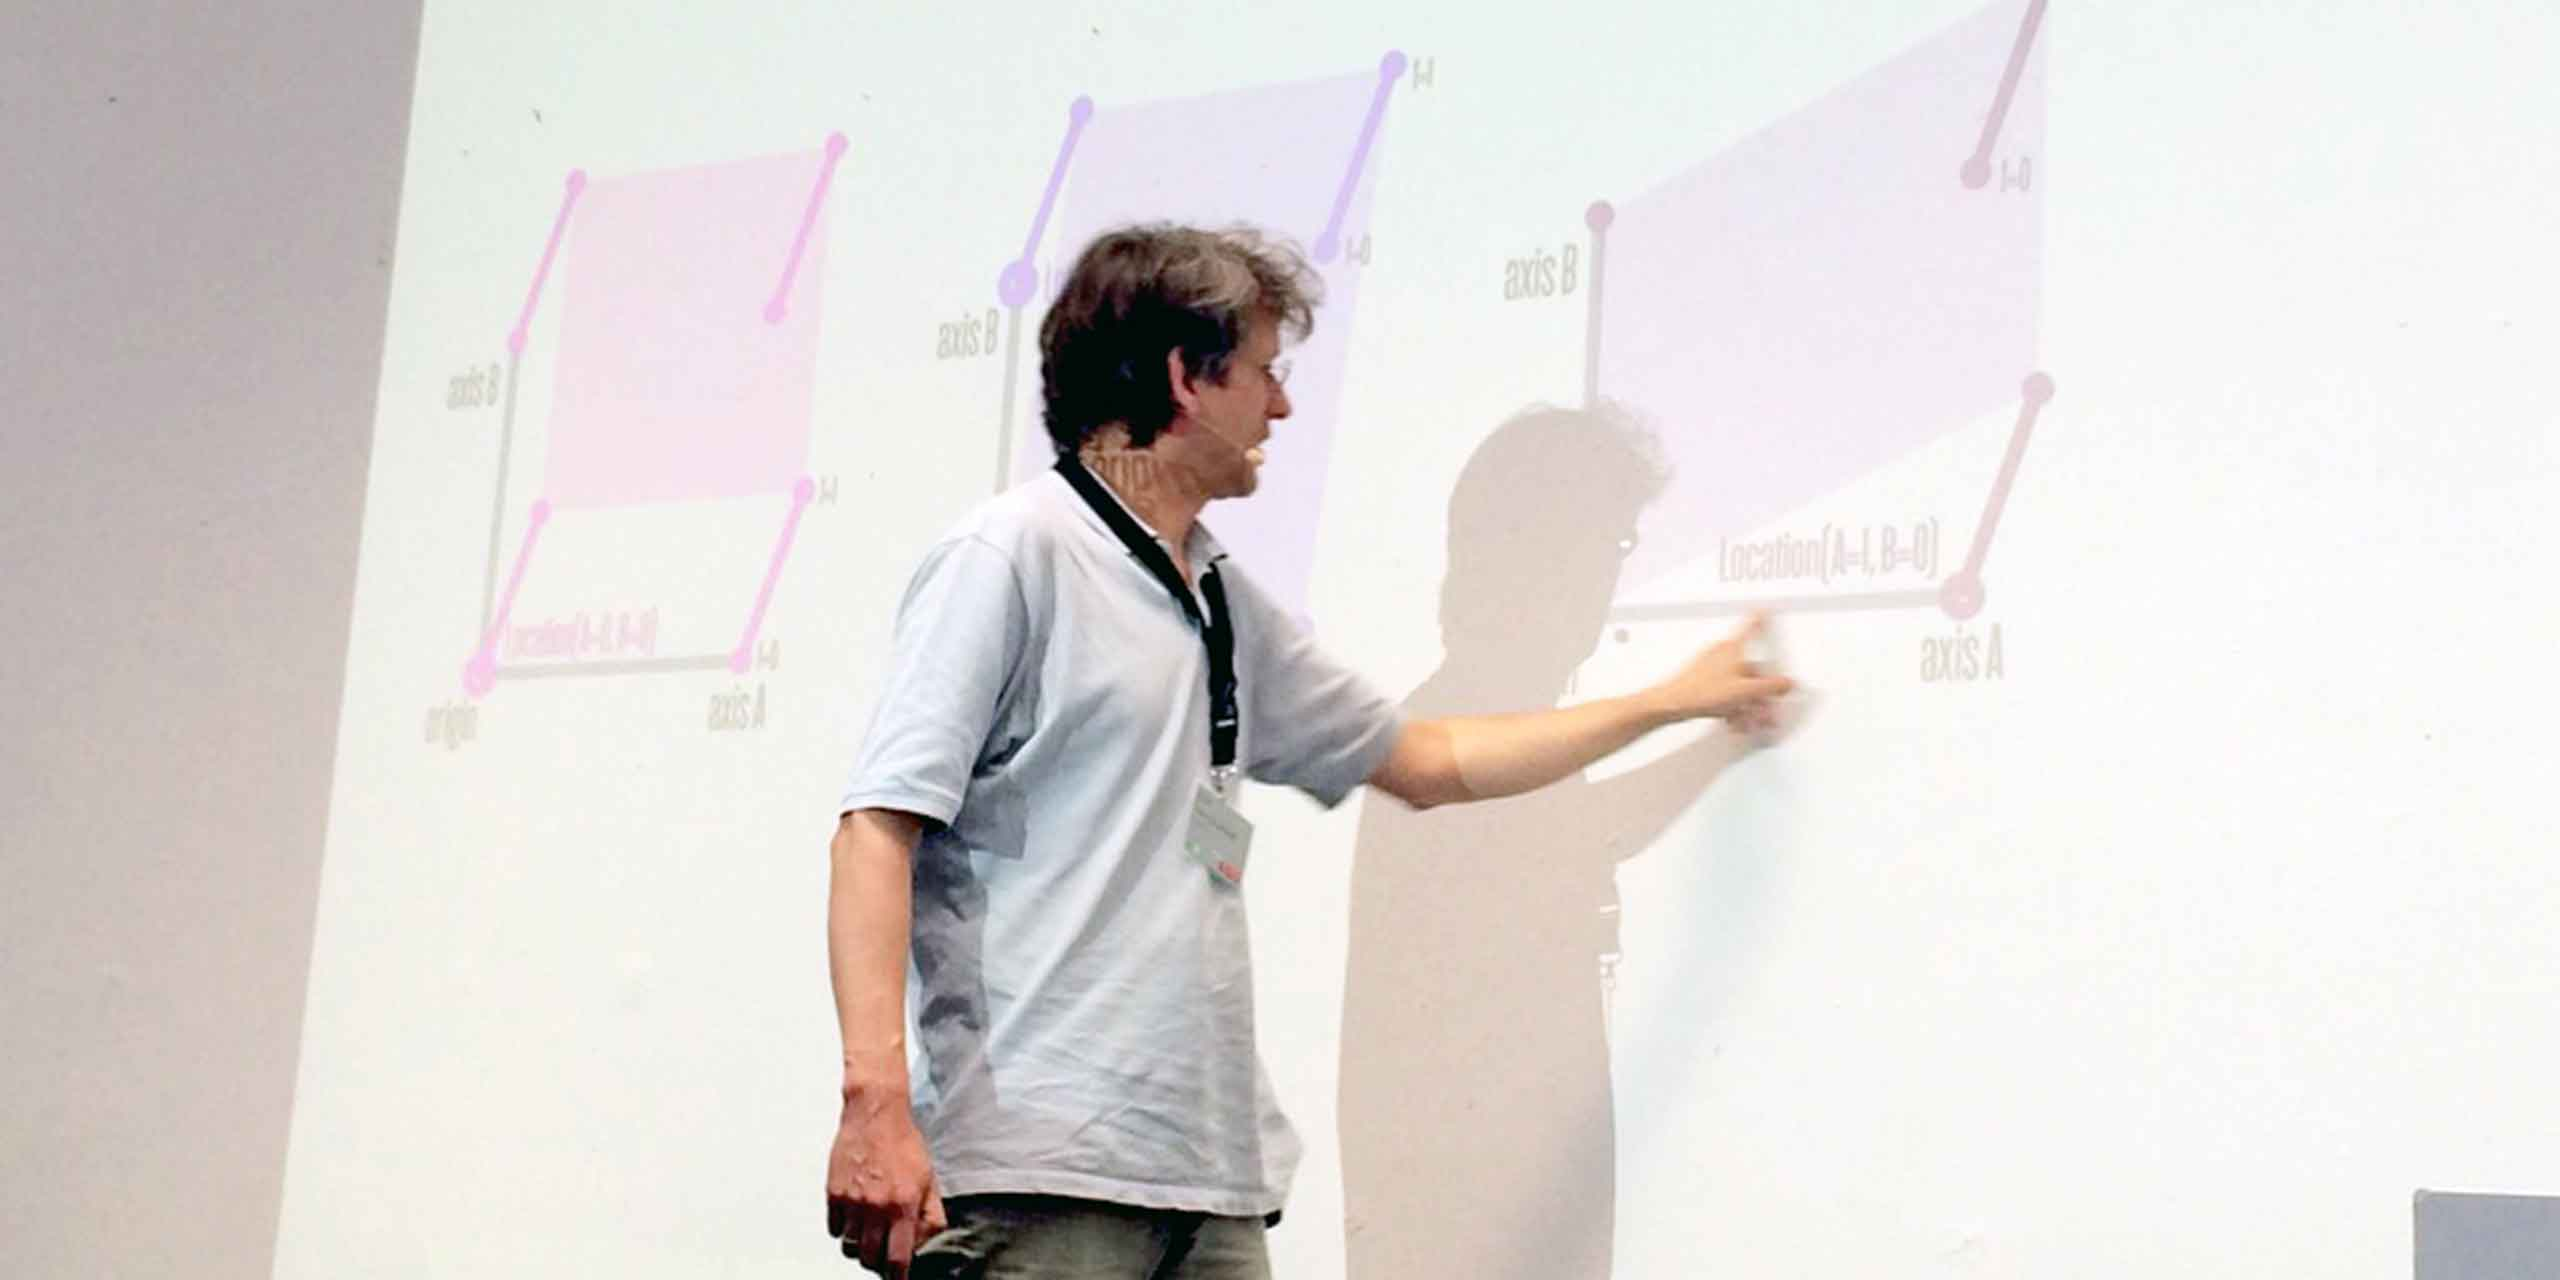 Erik van Blokland spoke about pushing the boundaries for experimental and non-linear typographic designspaces